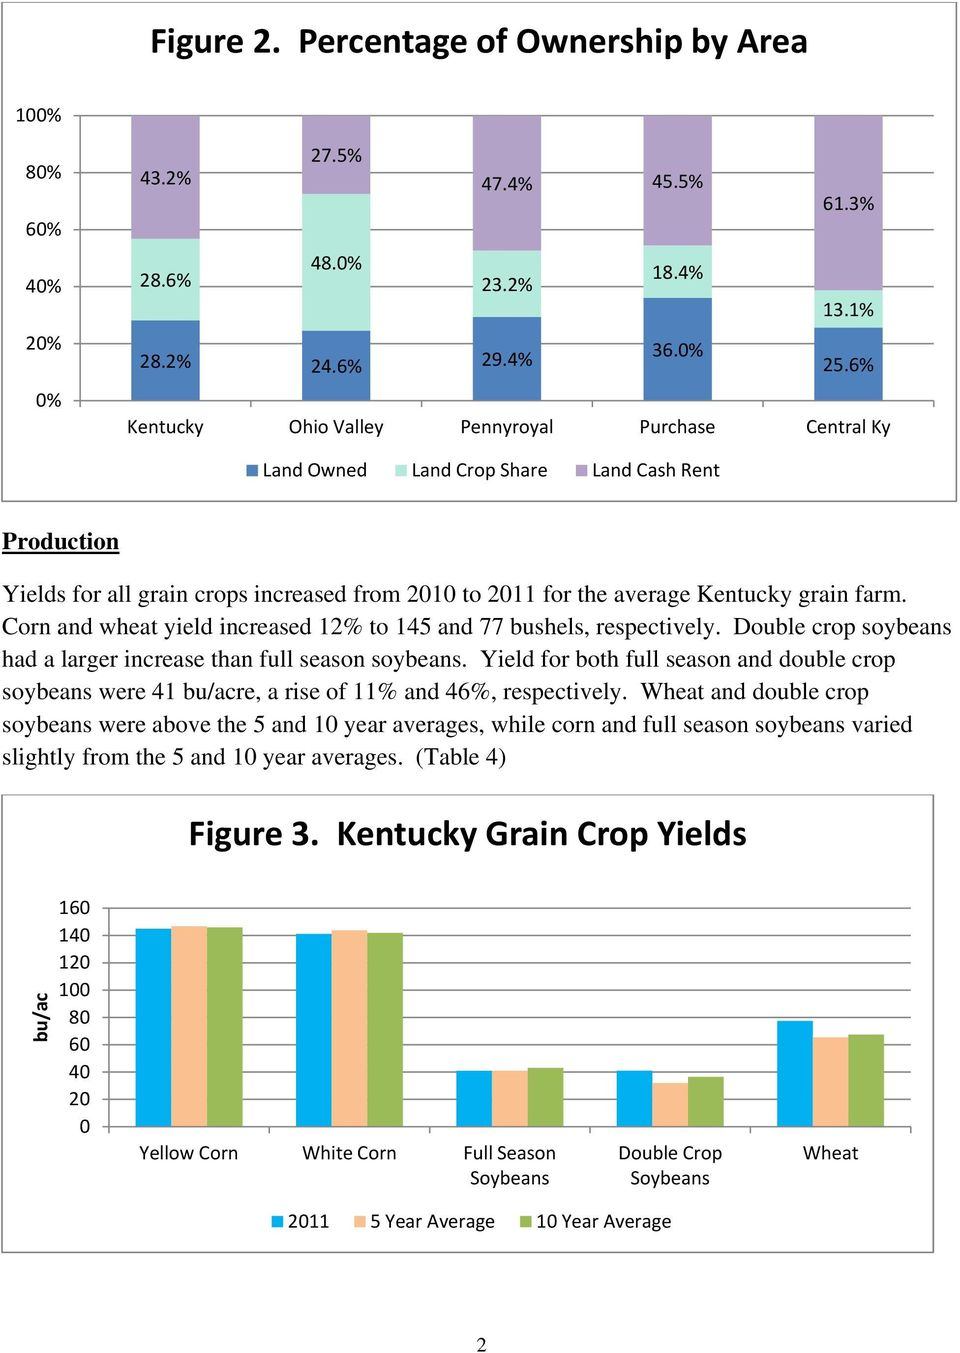 Corn and wheat yield increased 12% to 145 and 77 bushels, respectively. Double crop soybeans had a larger increase than full season soybeans.